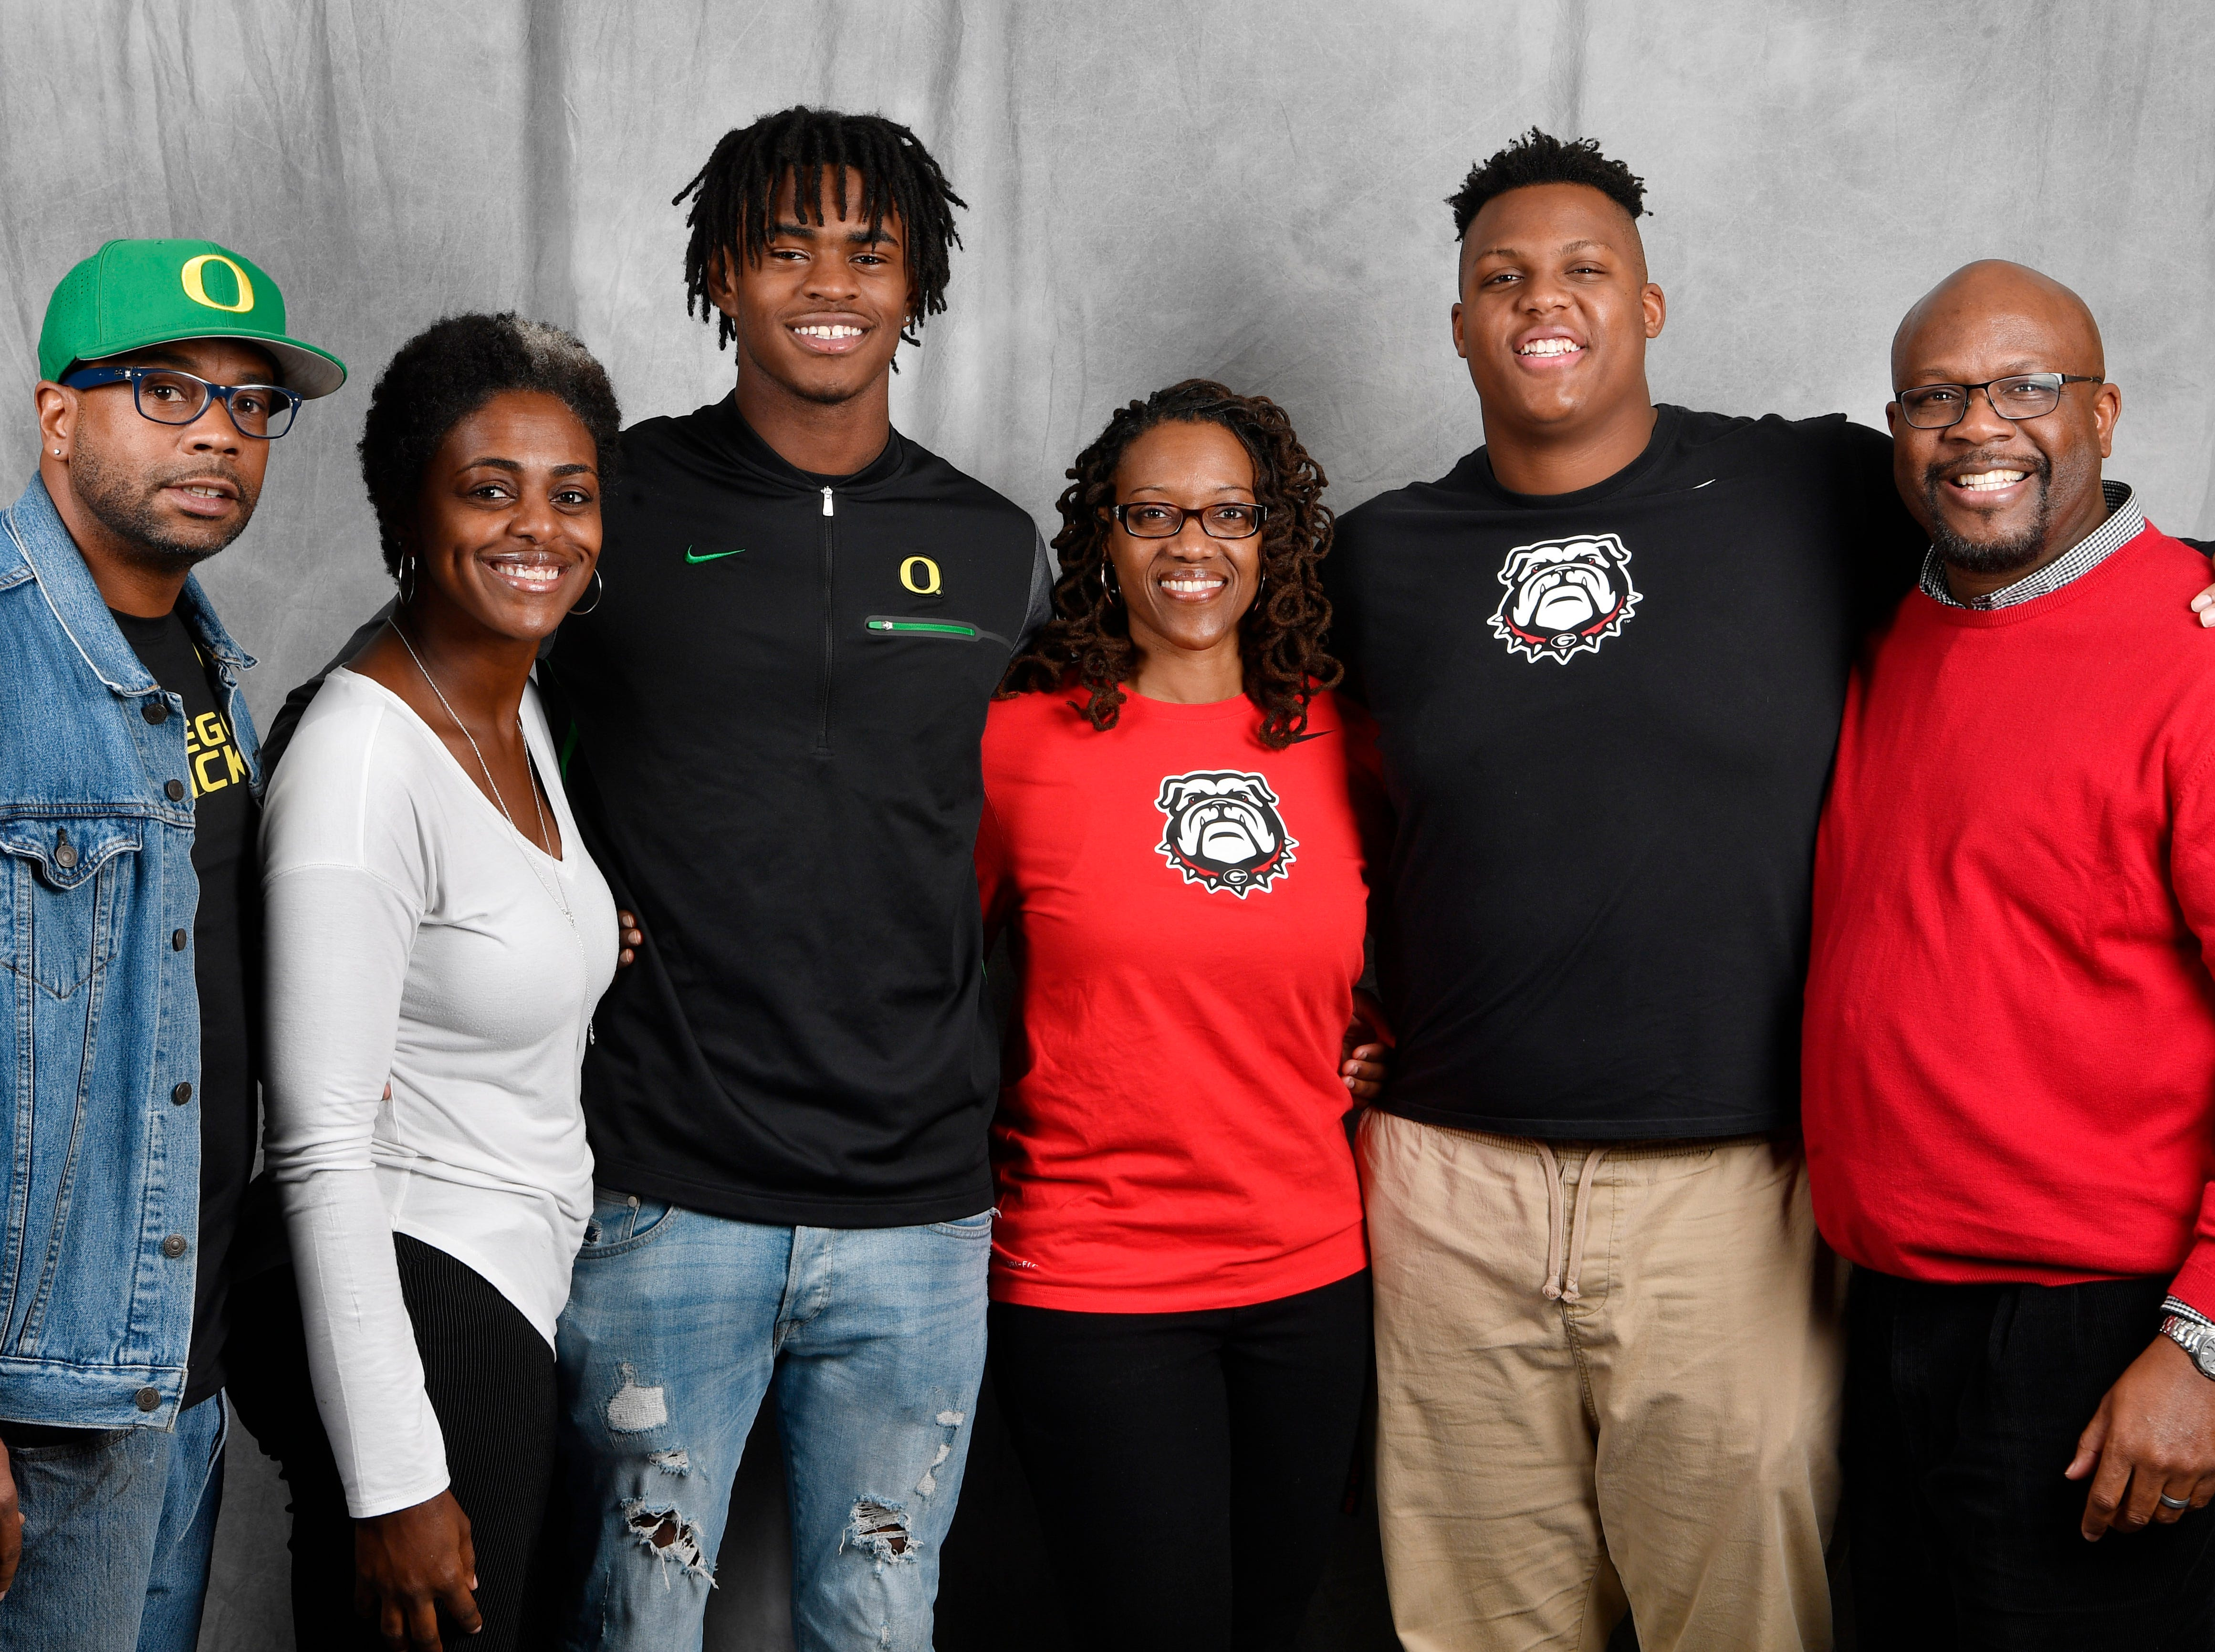 FRA's Lance Wilhoite and teammate Tymon Mitchell pose for a picture with their parents. From left, are Larry Wilhoite, Travonya Wilhoite, Lance Wilhoite, Andrea McClain, Tymon Mitchell and Dale Mitchell.